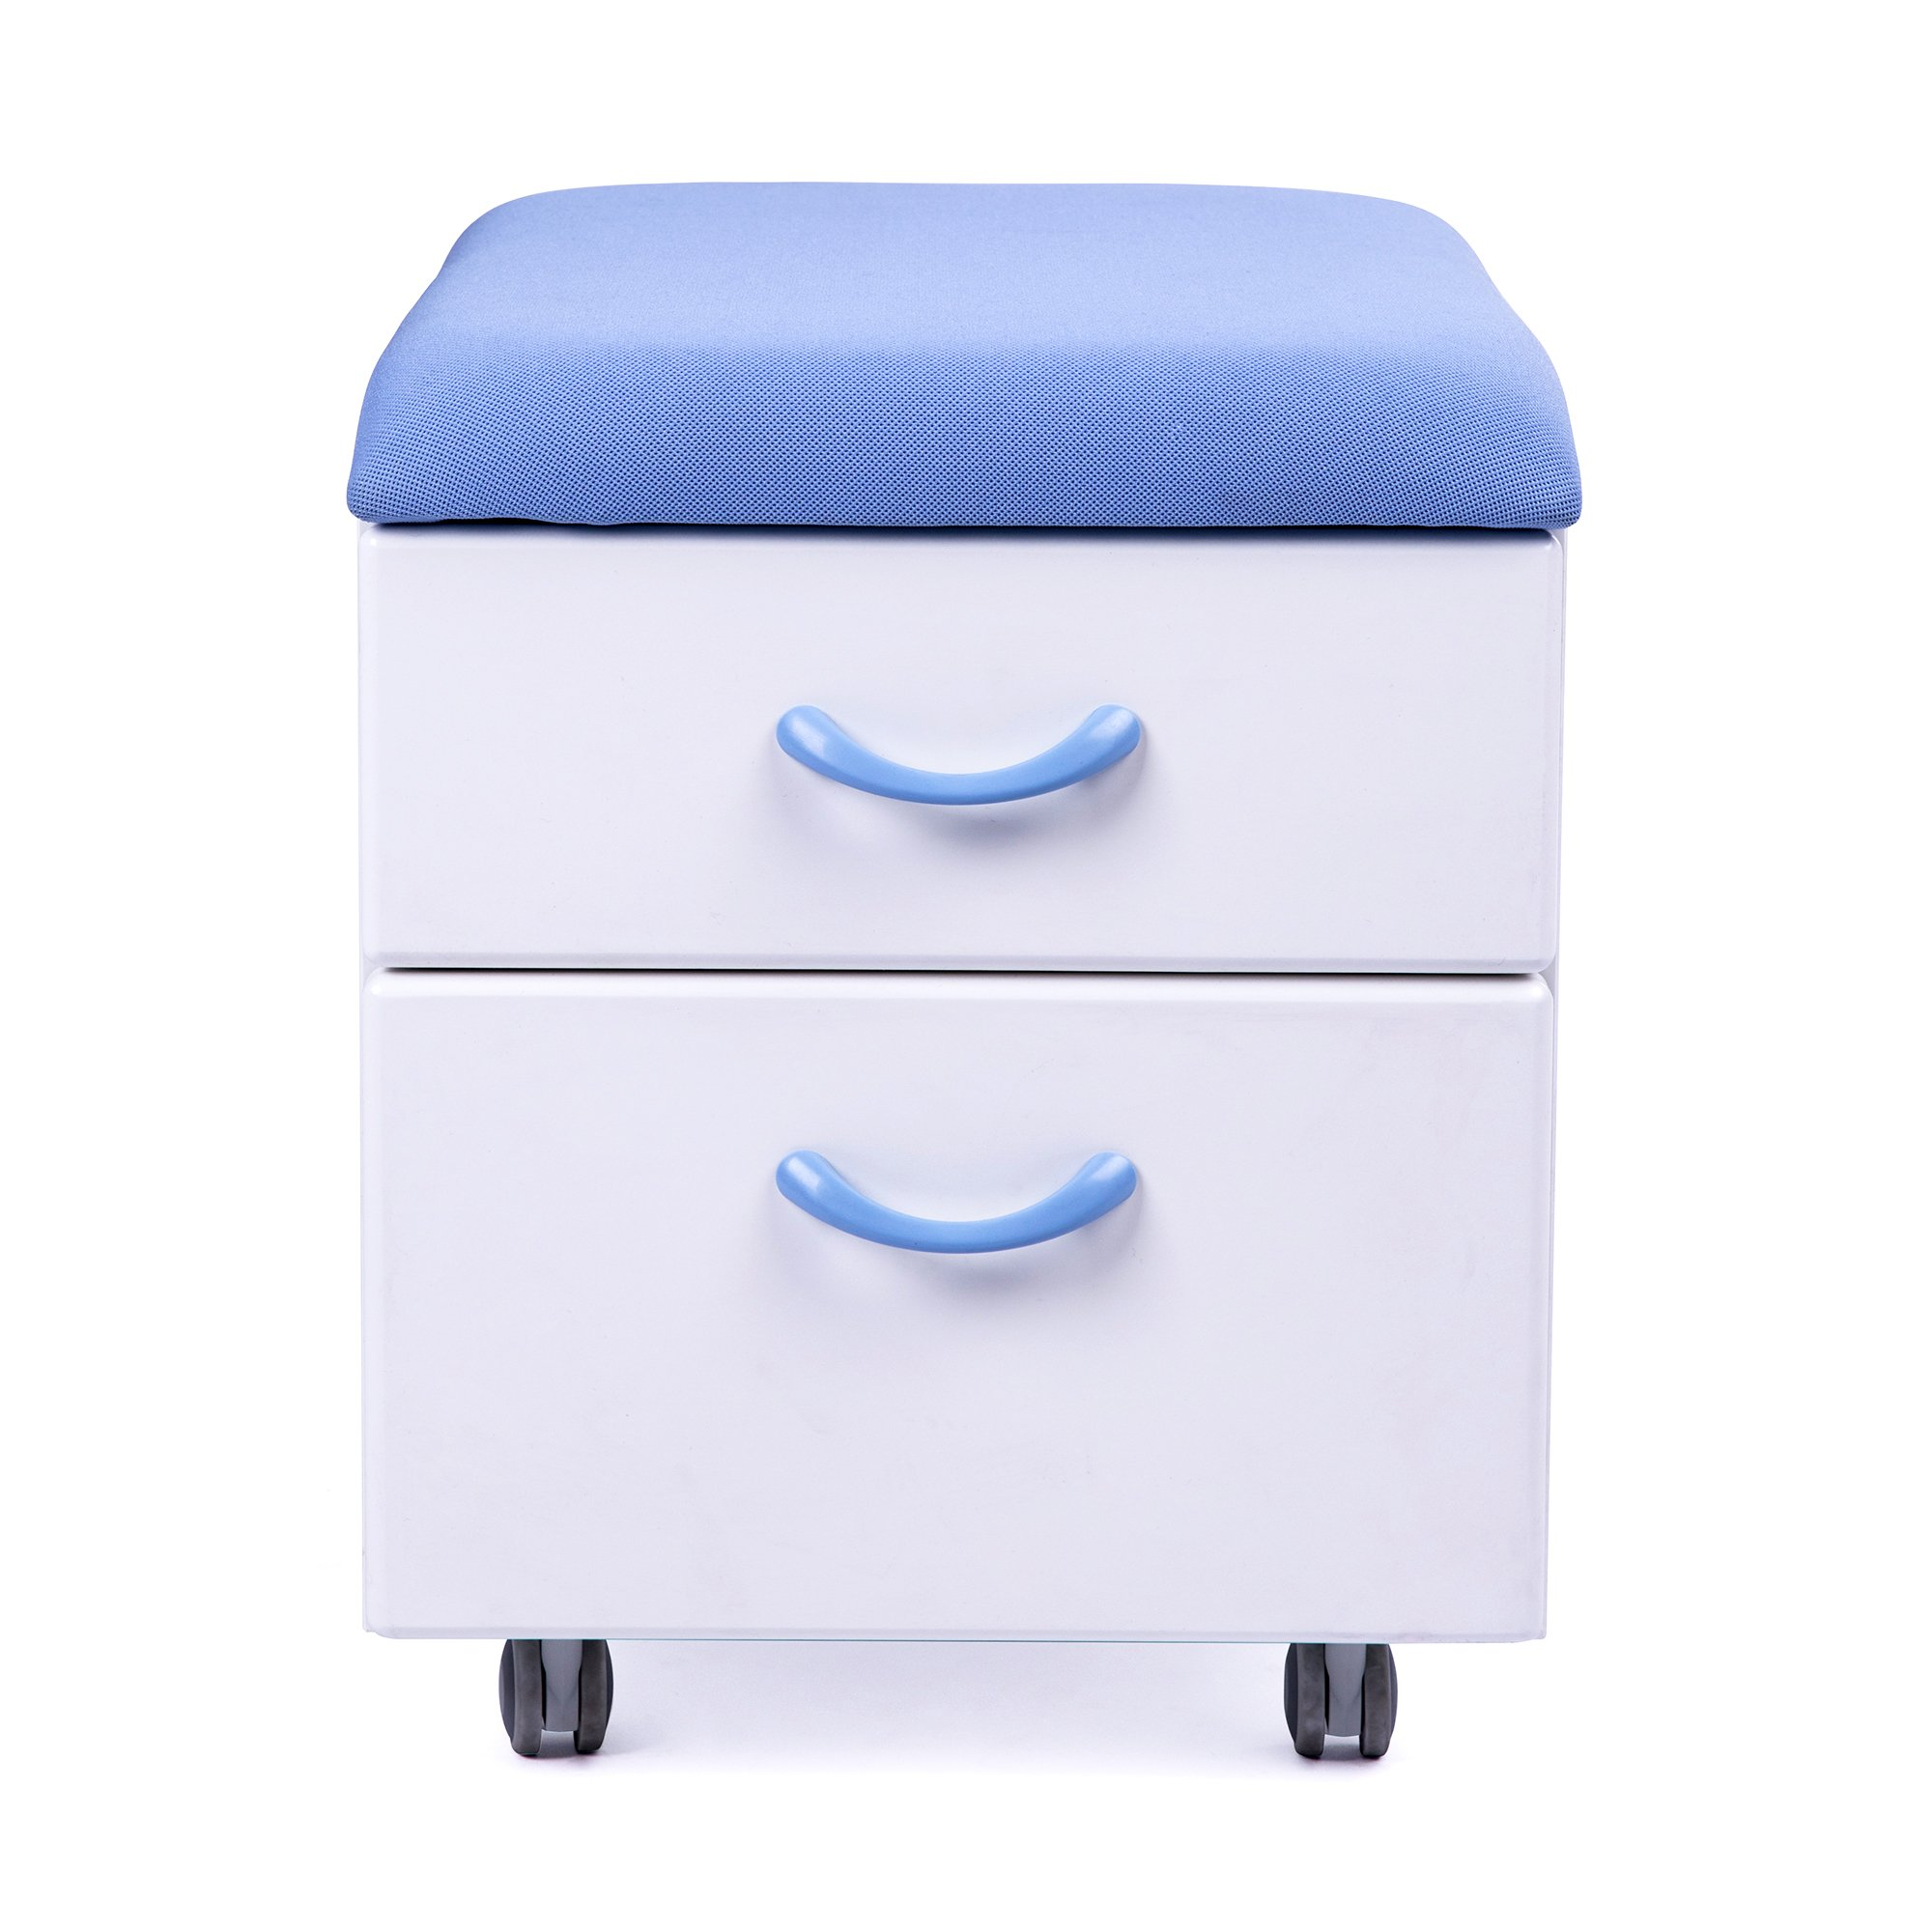 Sunon Soft Seating Pedestal Mobile 2-Drawer File Cabinet with Cushion for Kids or Parents Seating (Blue)